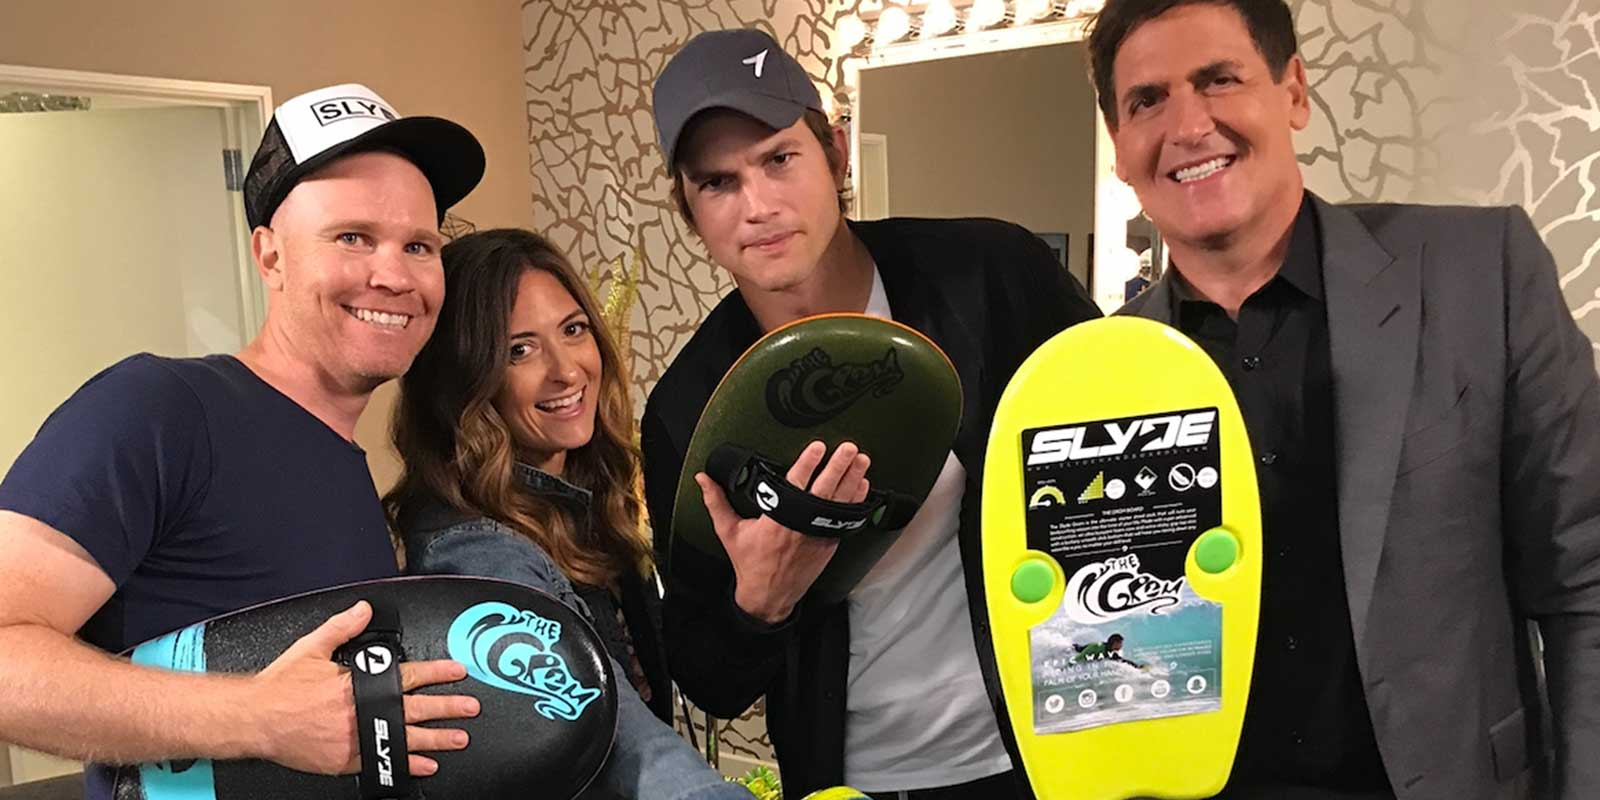 Slyde Handboards Returns To Shark Tank Season 10 on ABC